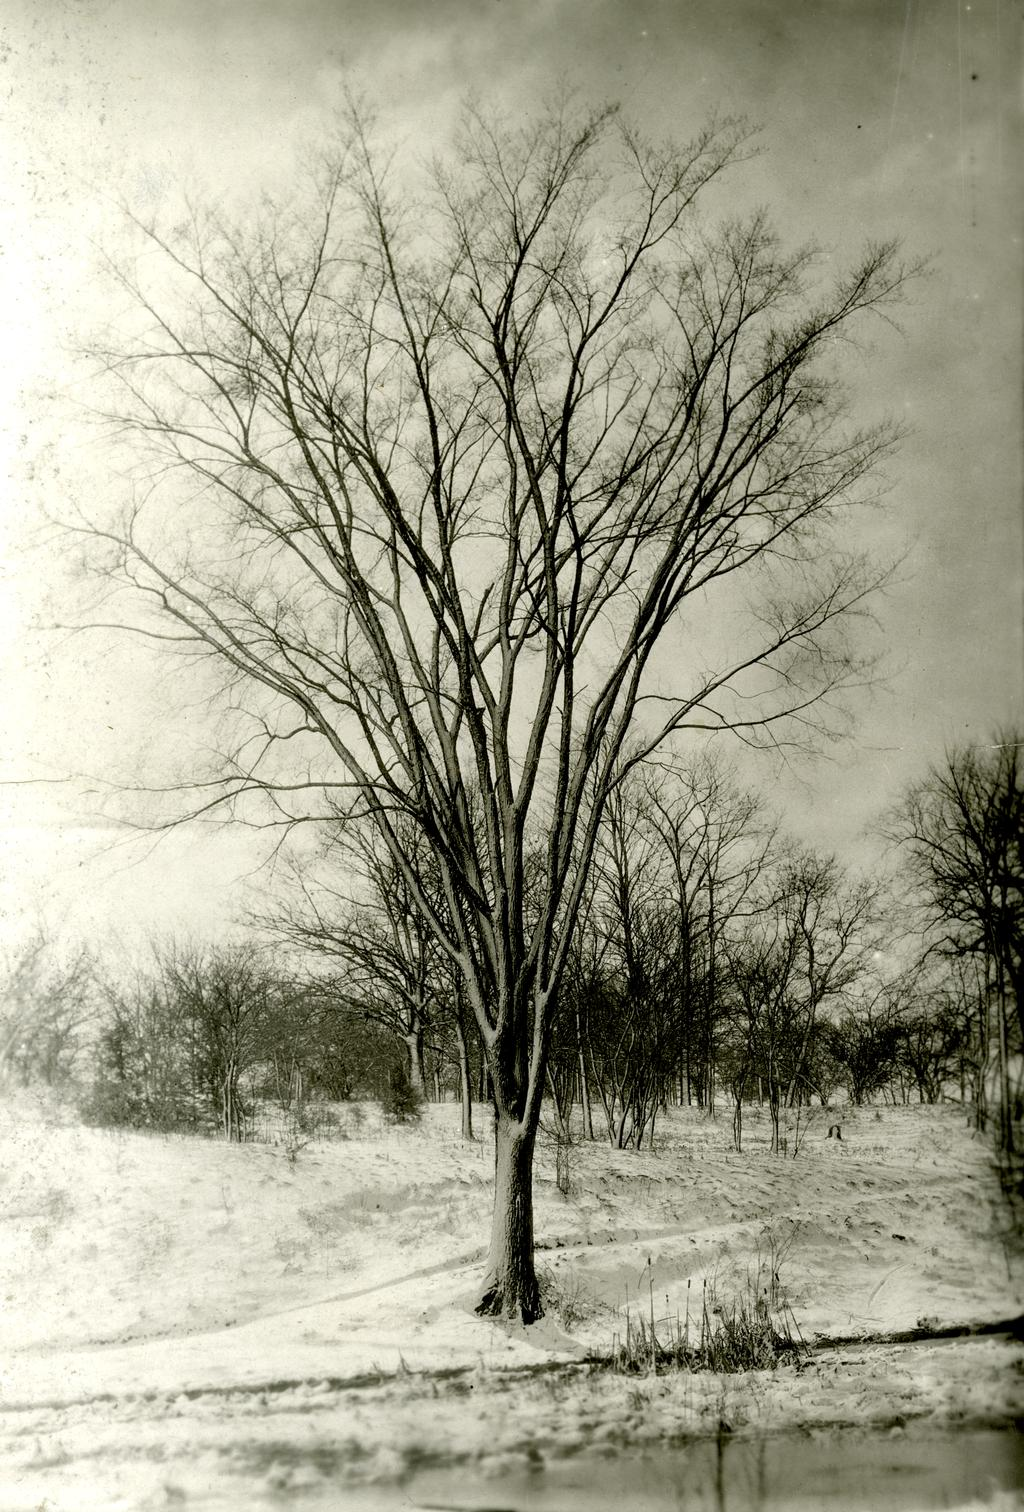 American elm on Lake Marmo after 1922 relocation with lengthy handwritten commentary on board. Describes moving tree under direction of O.C. Simonds. Note adds tree helped C.E.Godshalk become Arboretum superintendent in May 1922. Drawn illustration of mov